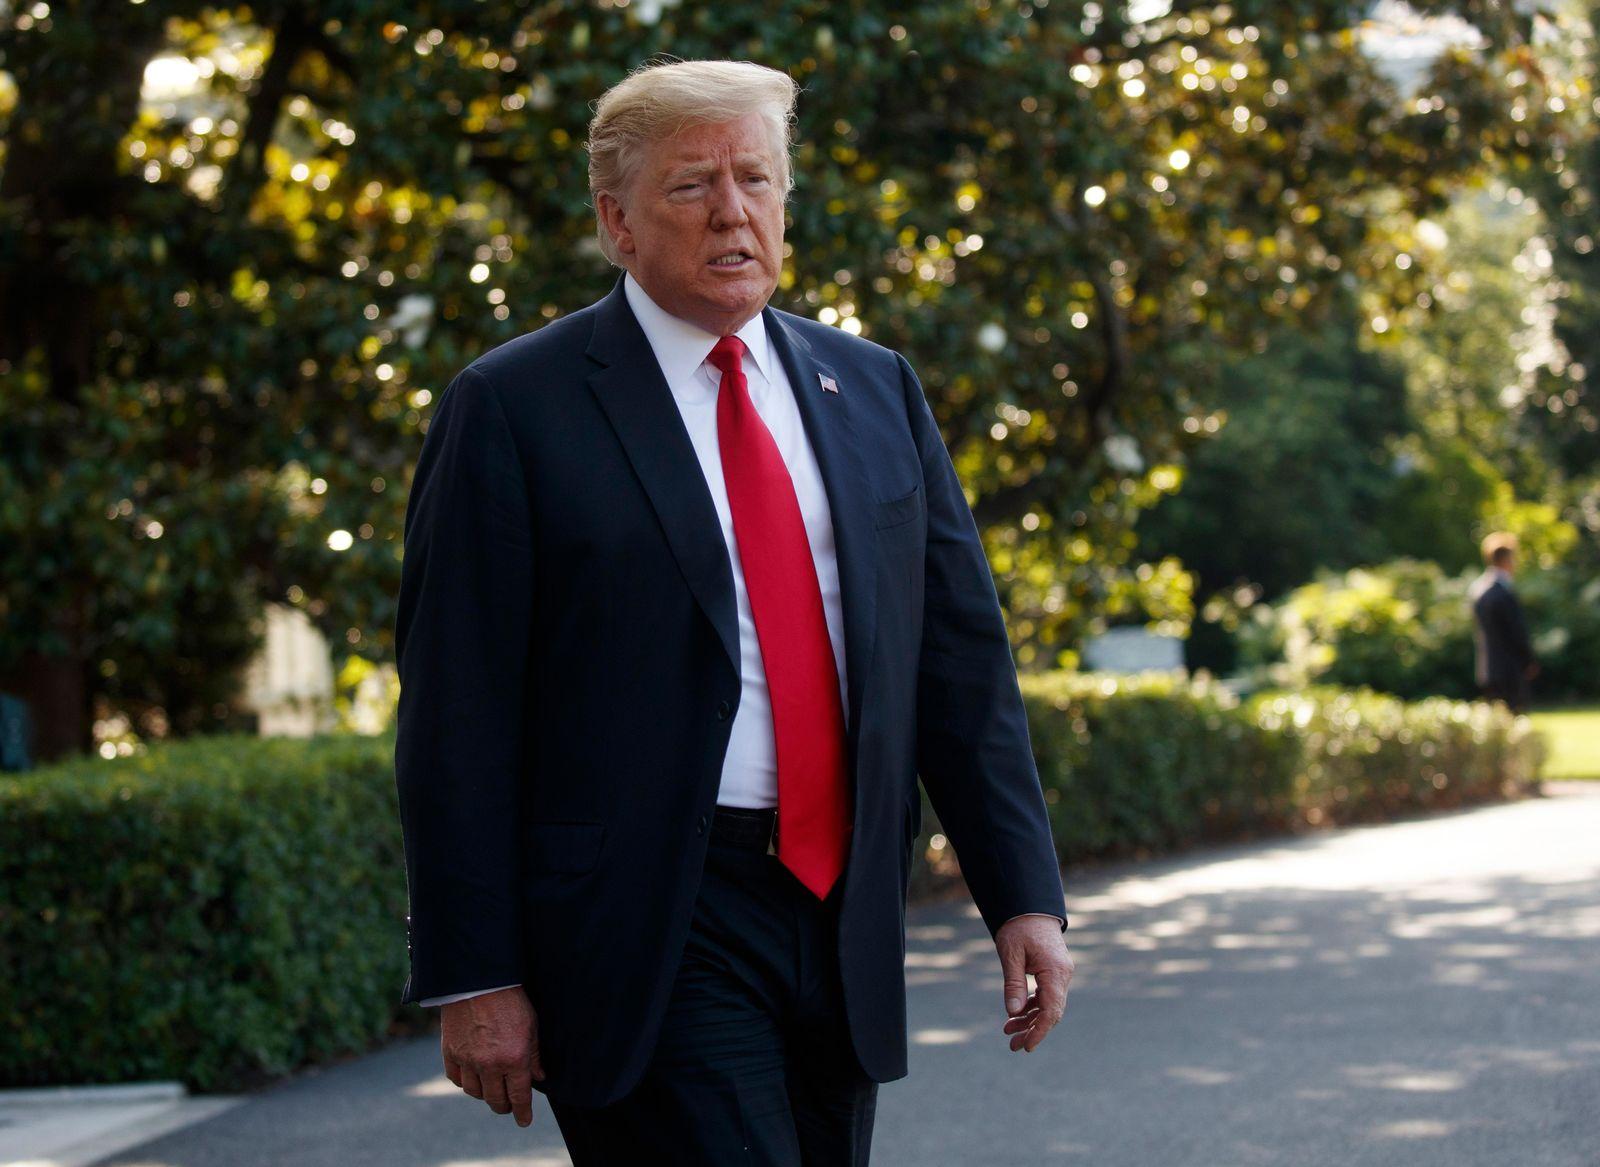 FILE - In this Thursday, May 30, 2019, file photo, President Donald Trump talks with reporters before departing on Marine One, in Washington. (AP Photo/Evan Vucci, File)